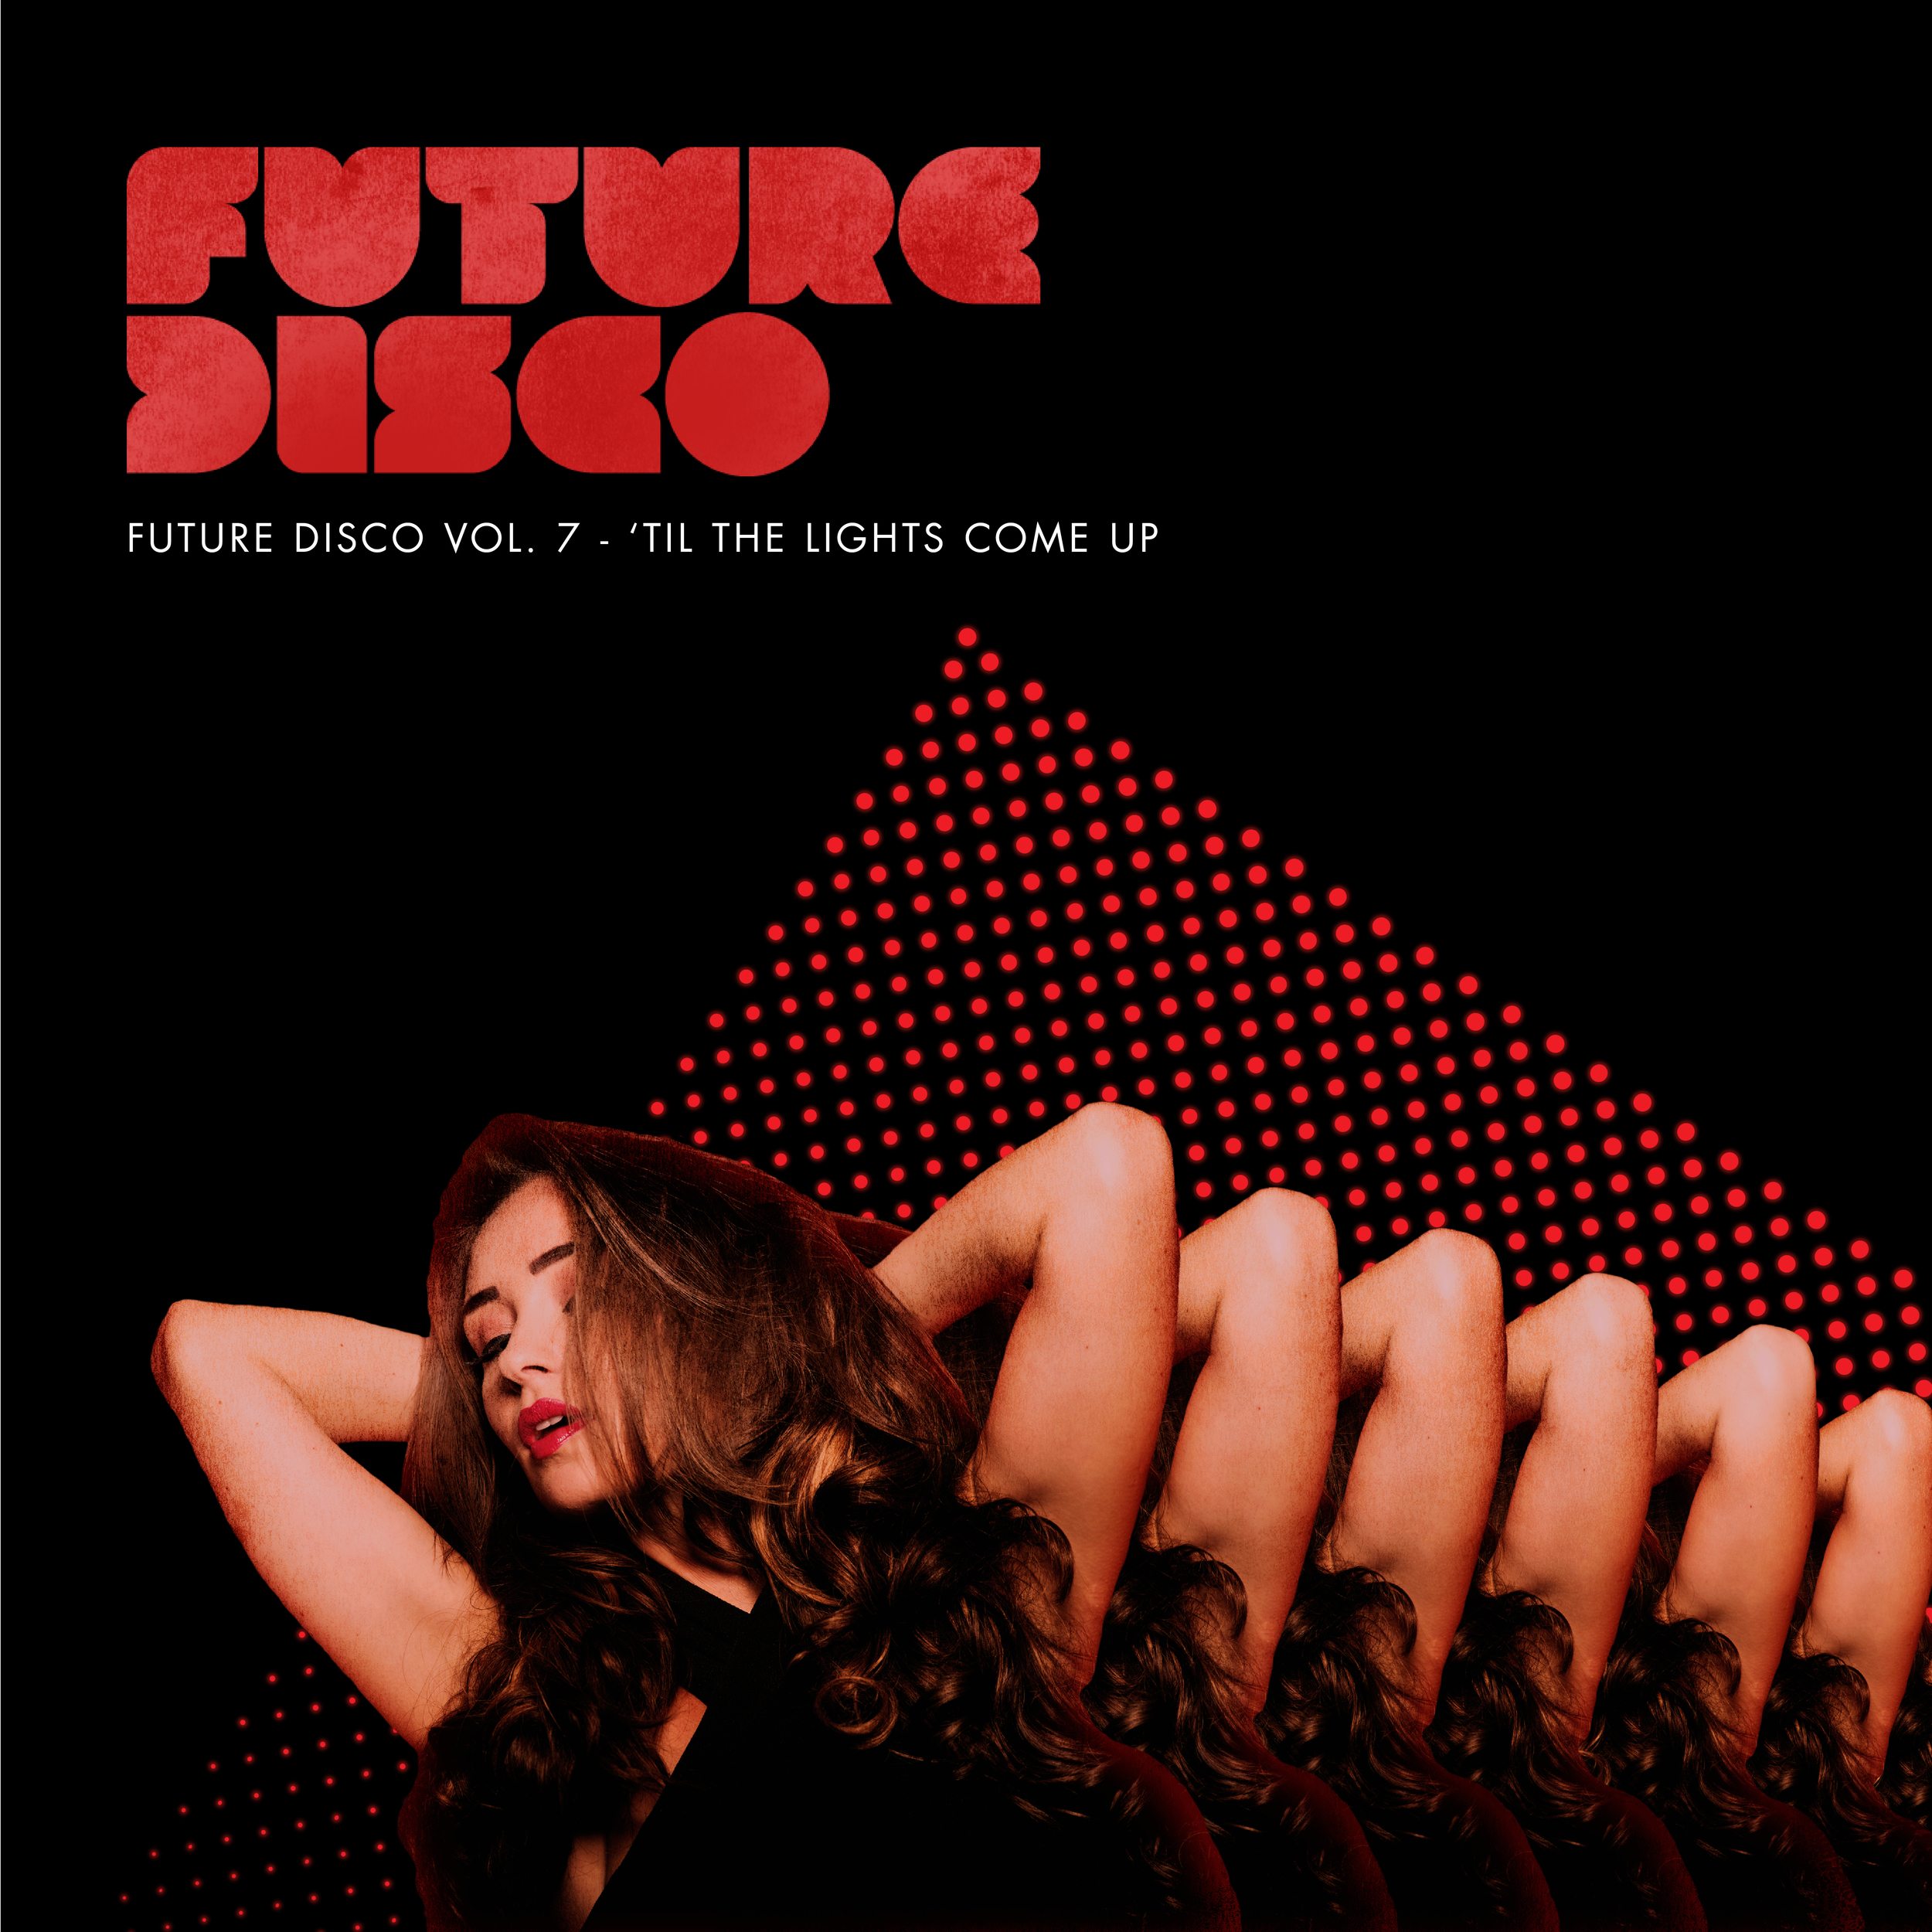 Future Disco Vol. 7